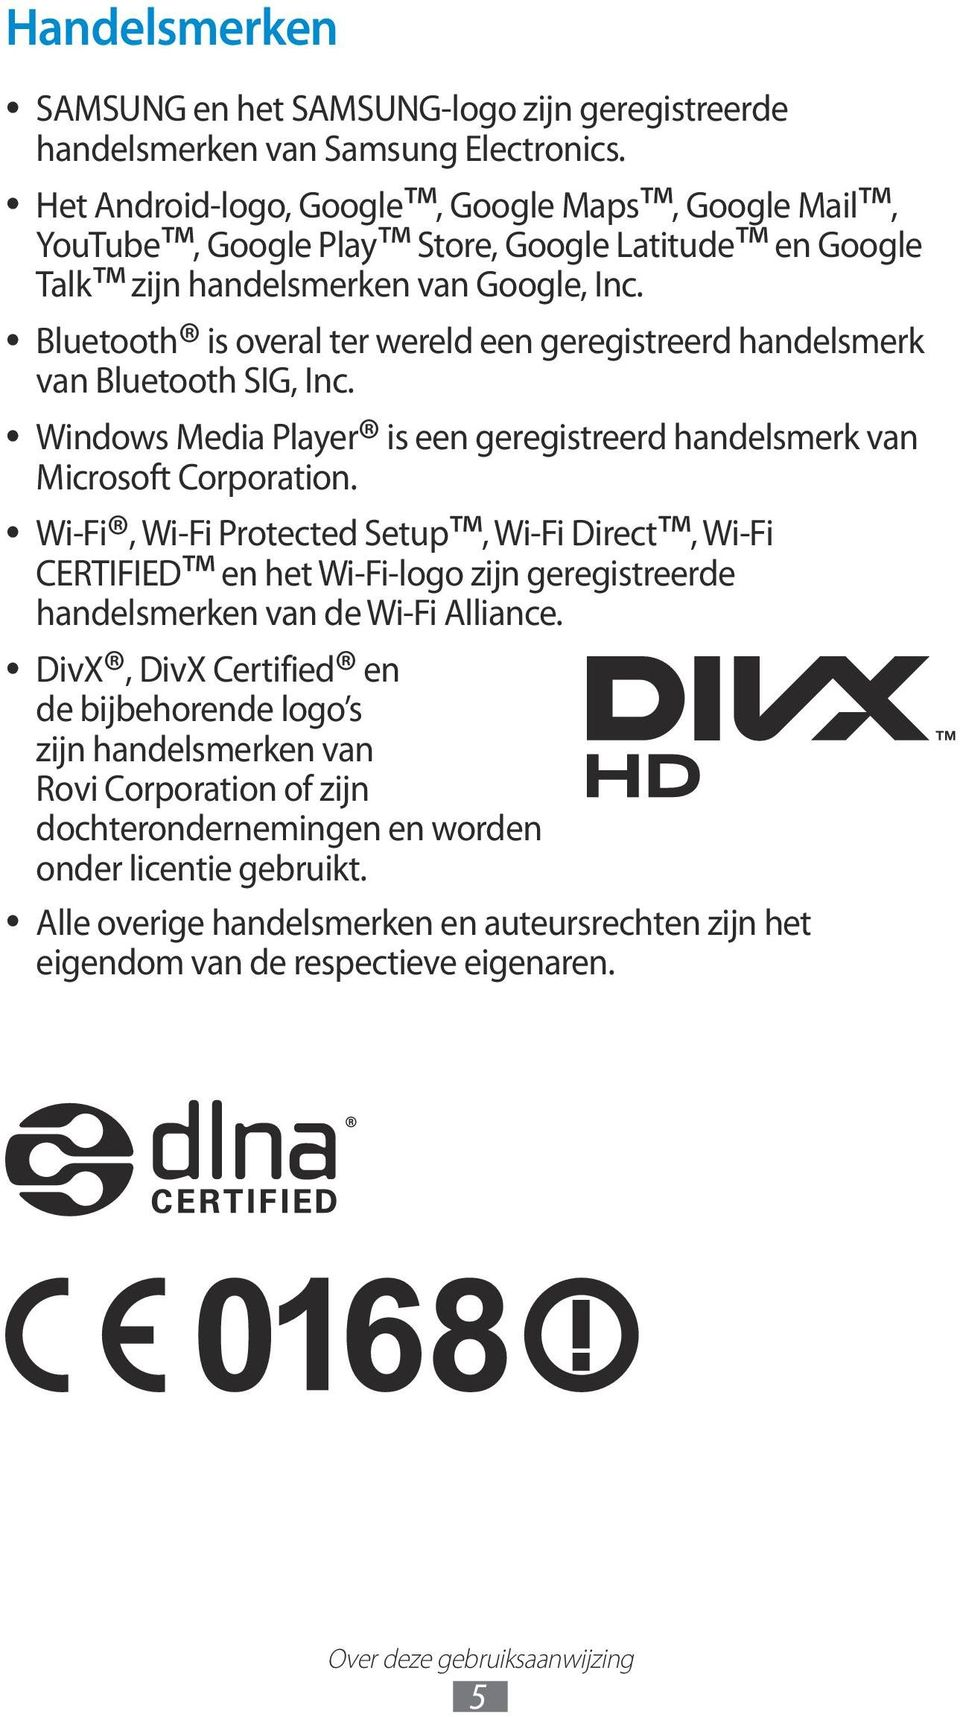 Bluetooth is overal ter wereld een geregistreerd handelsmerk van Bluetooth SIG, Inc. Windows Media Player is een geregistreerd handelsmerk van Microsoft Corporation.